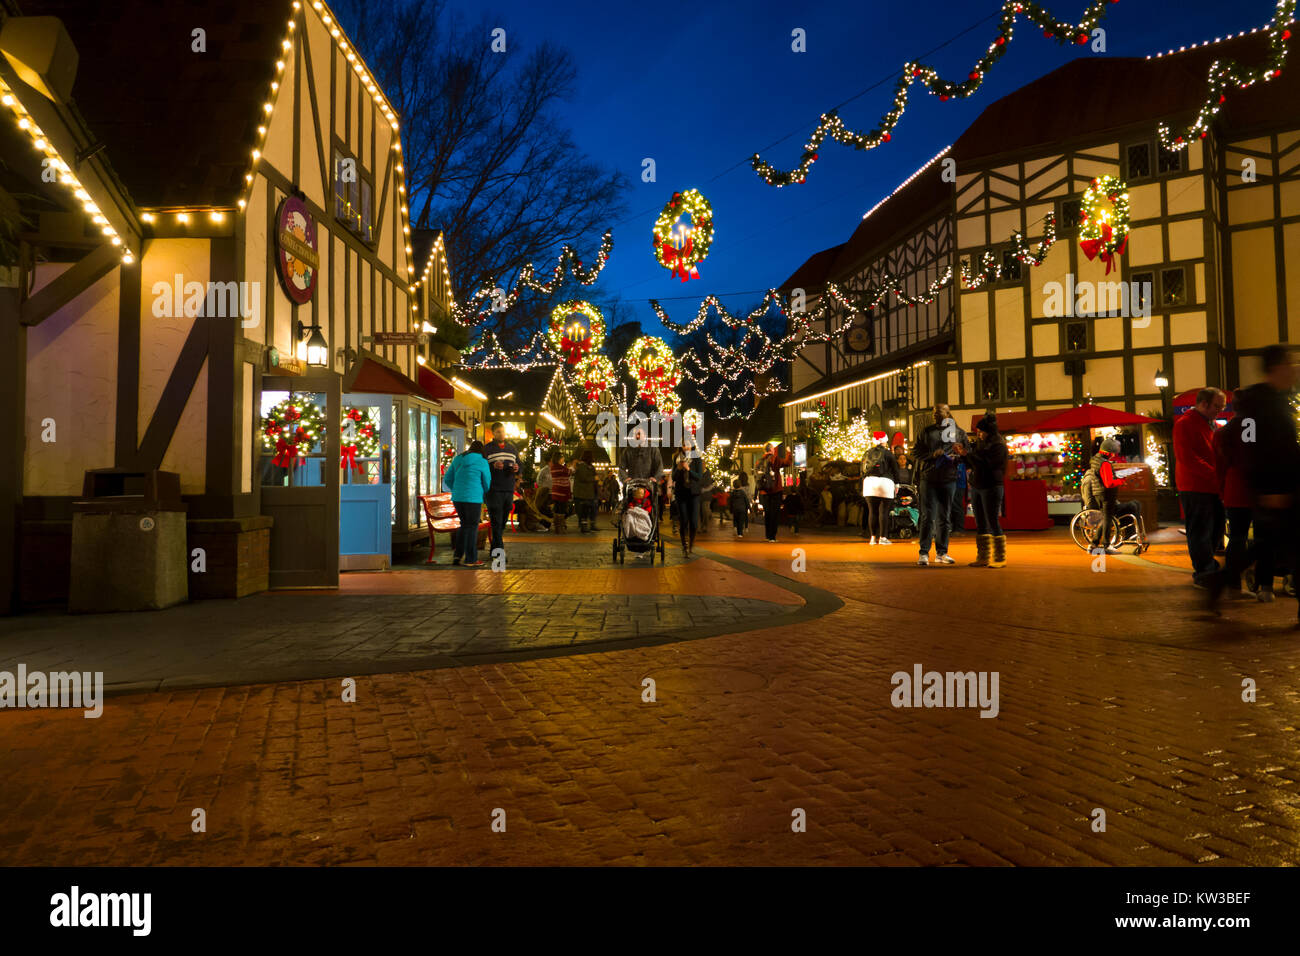 Busch Gardens Williamsburg Stock Photos & Busch Gardens Williamsburg ...